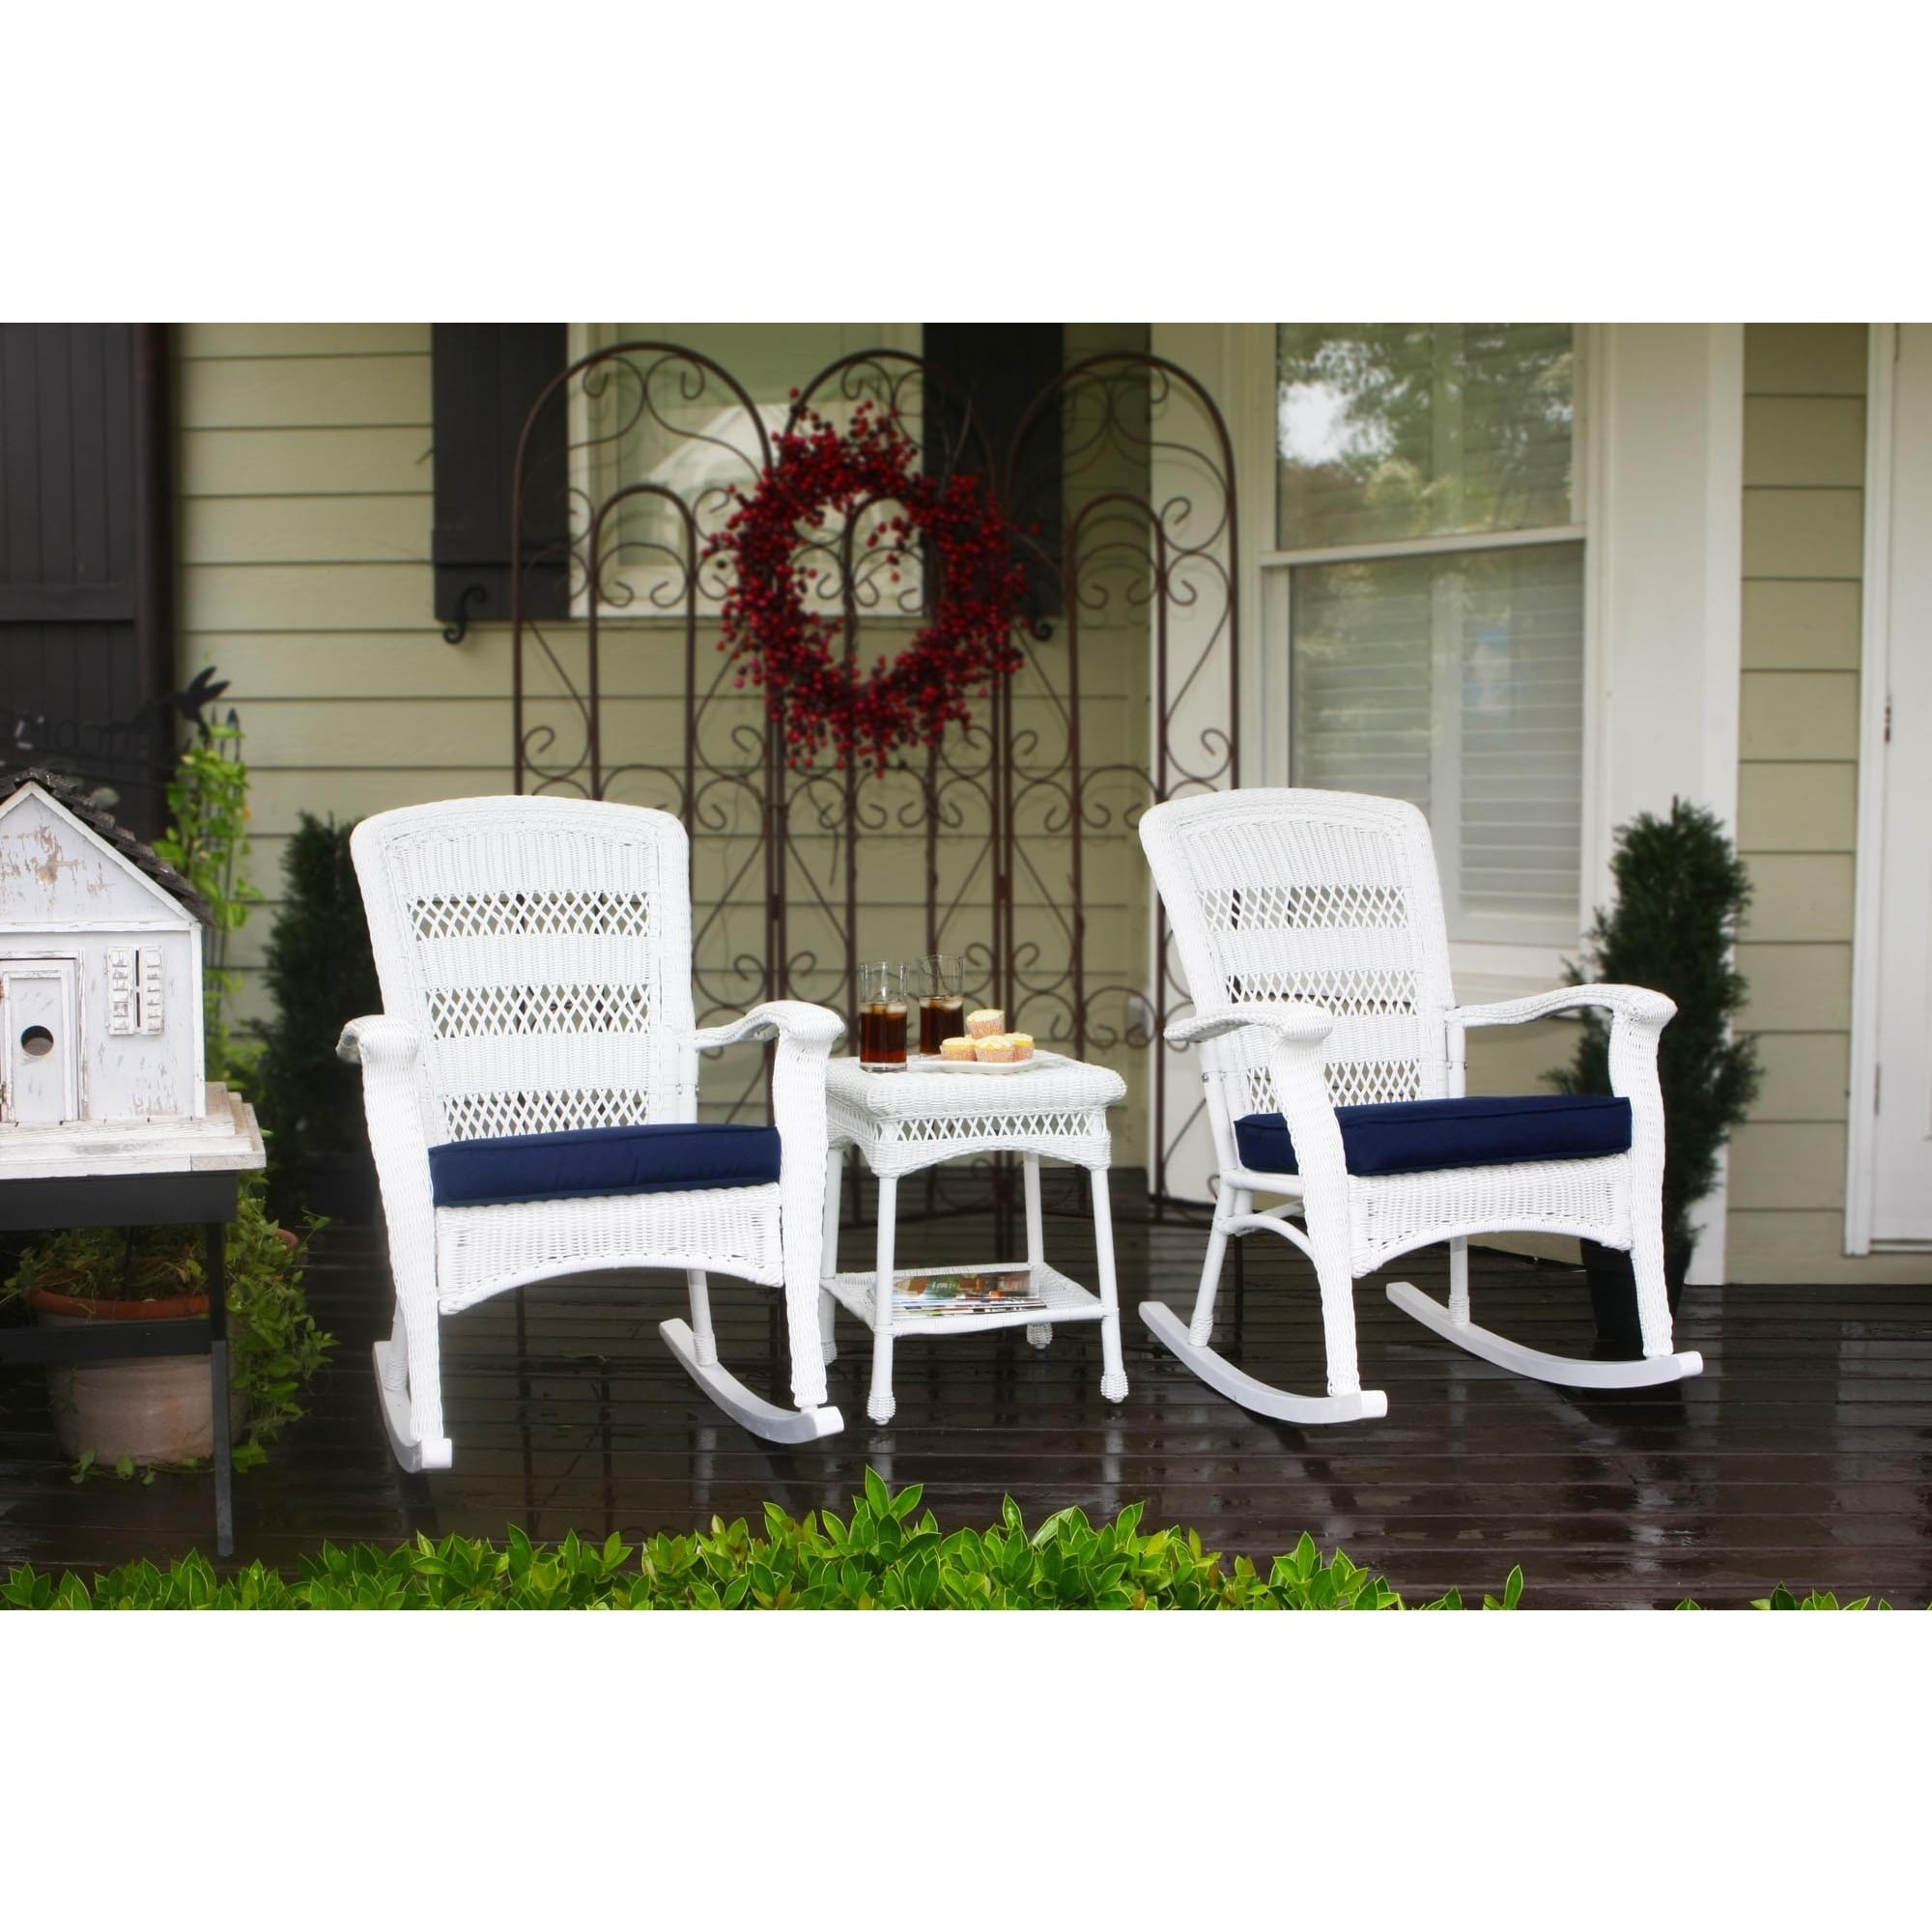 Tremendous Havenside Home Avoca Coastal White Resin Wicker Outdoor Plantation Rocking Chair And Table Set Pack Of 3 Inzonedesignstudio Interior Chair Design Inzonedesignstudiocom